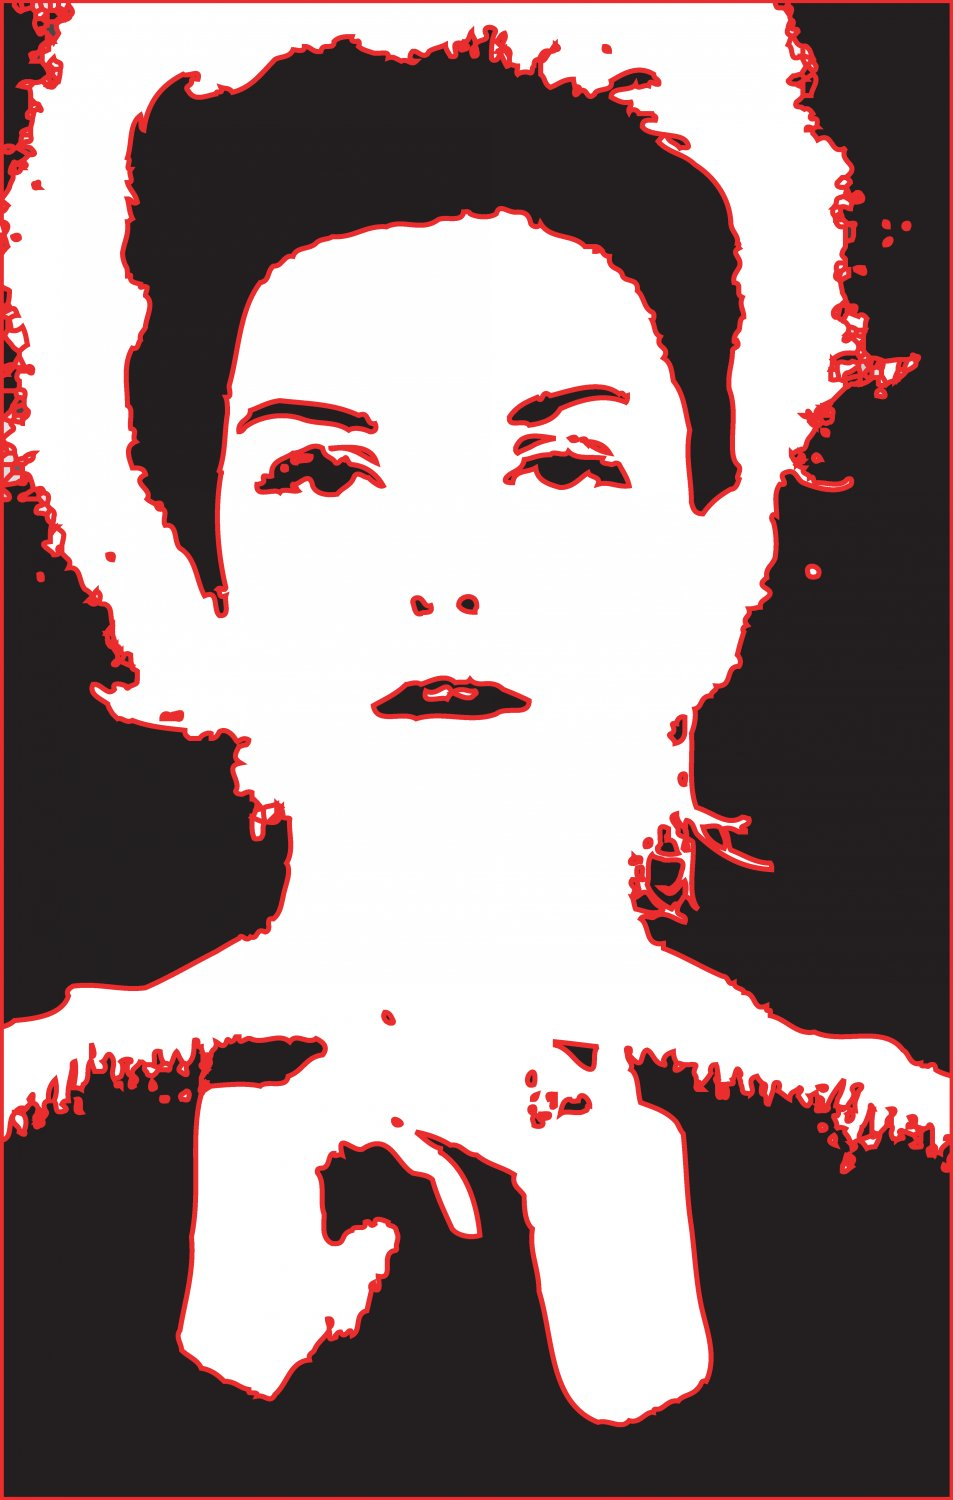 - Once in PostScript, I gave the shapes a nice red outline - A portrait of Donna Mitchell as a young model - 1962 - Tony Karp, design, art, photography, techno-impressionist, techno-impressionism, aerial photography , drone , drones , dji , mavic pro , video , 3D printing - Books -